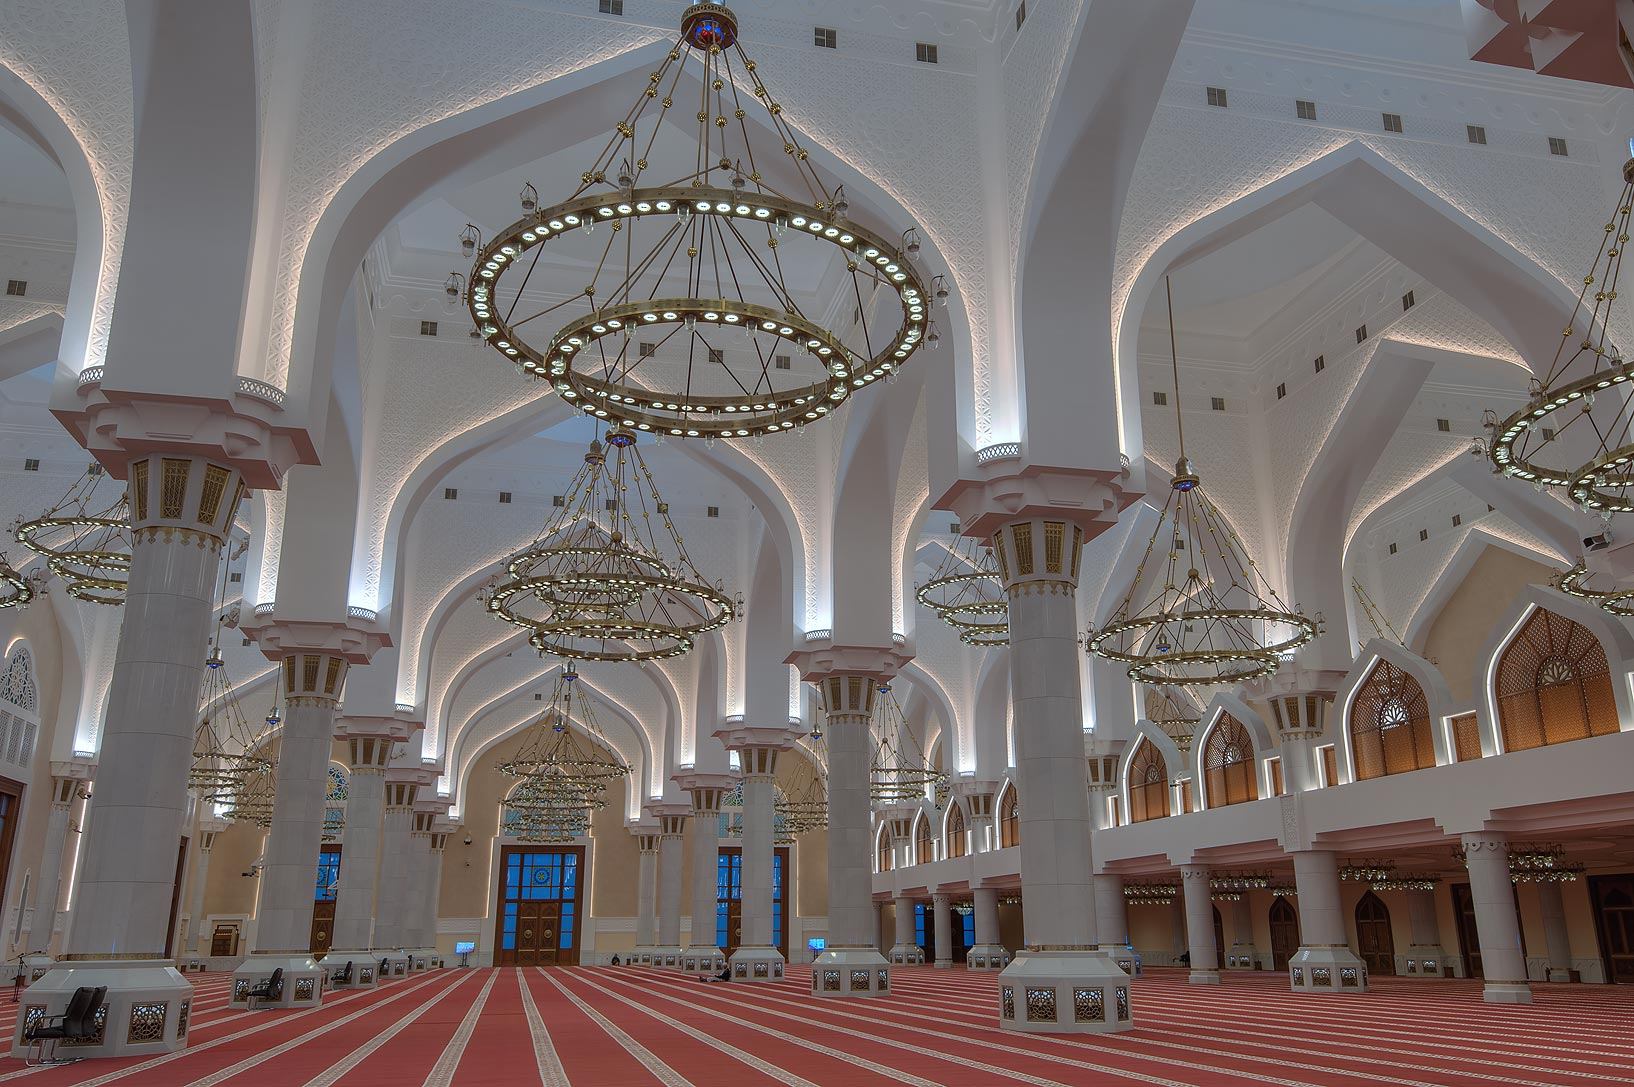 Arches and chandeliers of prayer hall of State...Wahhab Mosque) at morning. Doha, Qatar